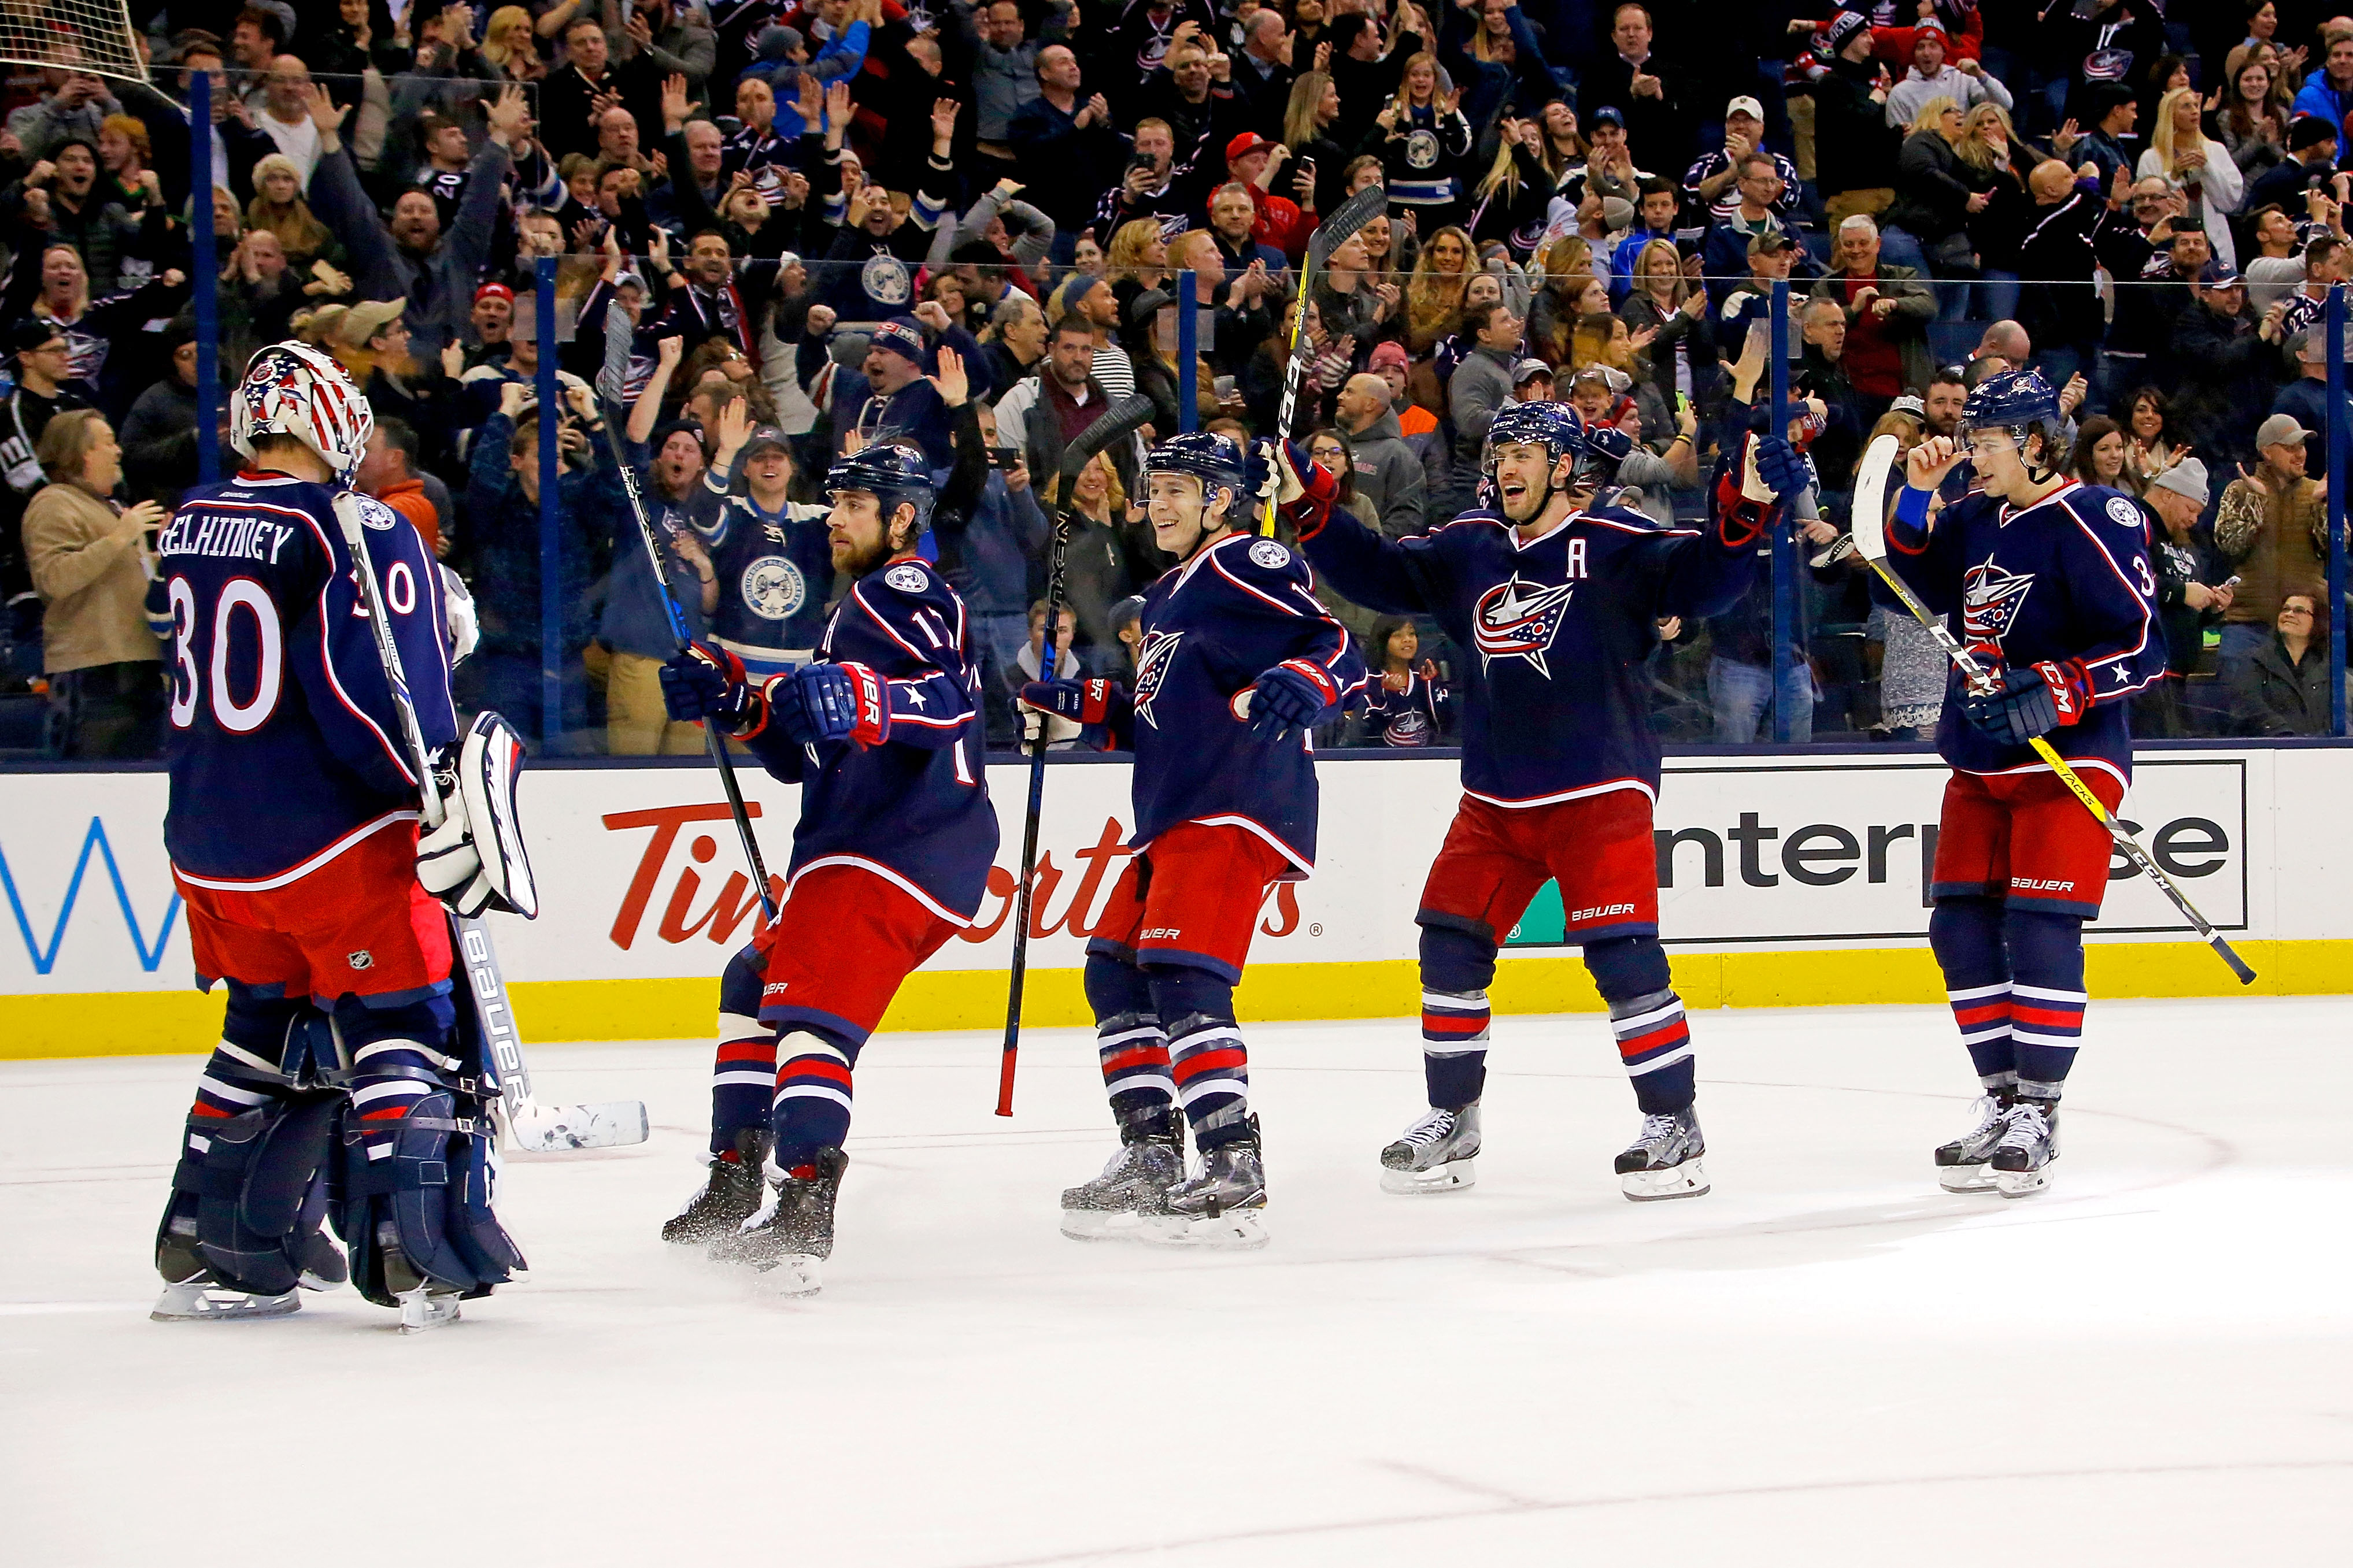 2016 NHL Year in Review: Penguins Blue Jackets lead a year of